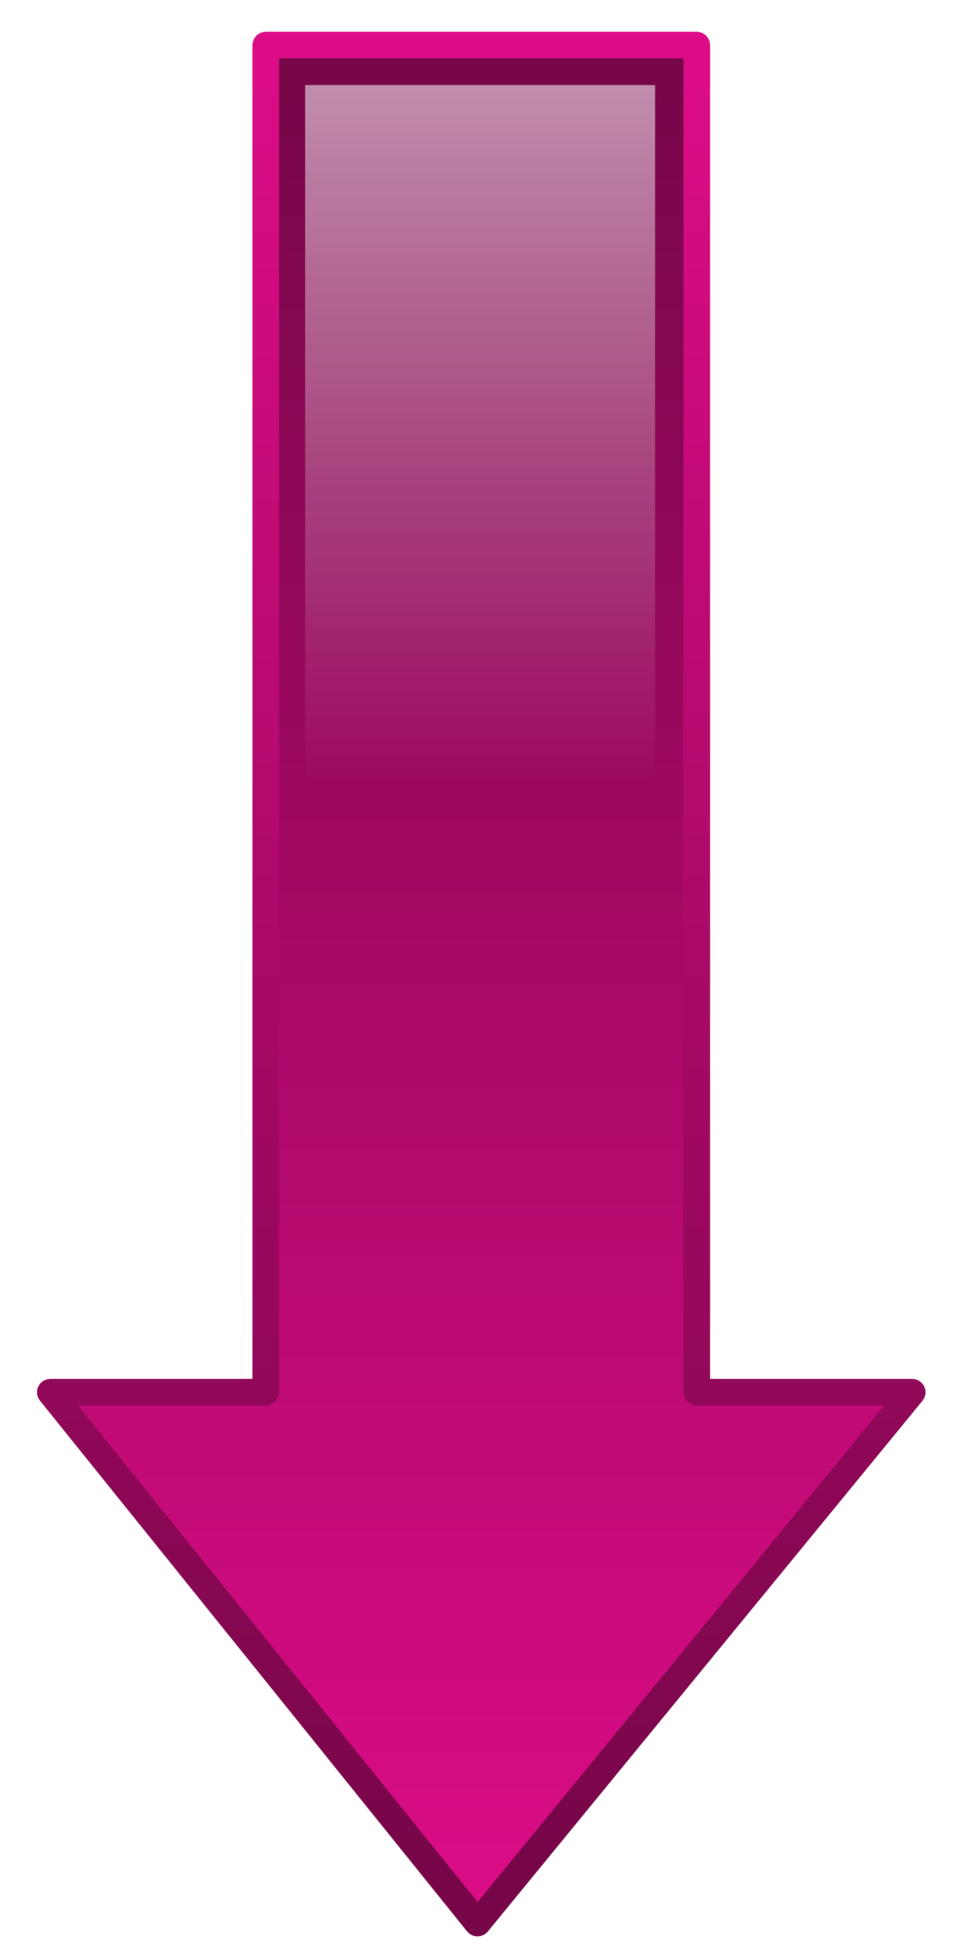 Pink down arrow